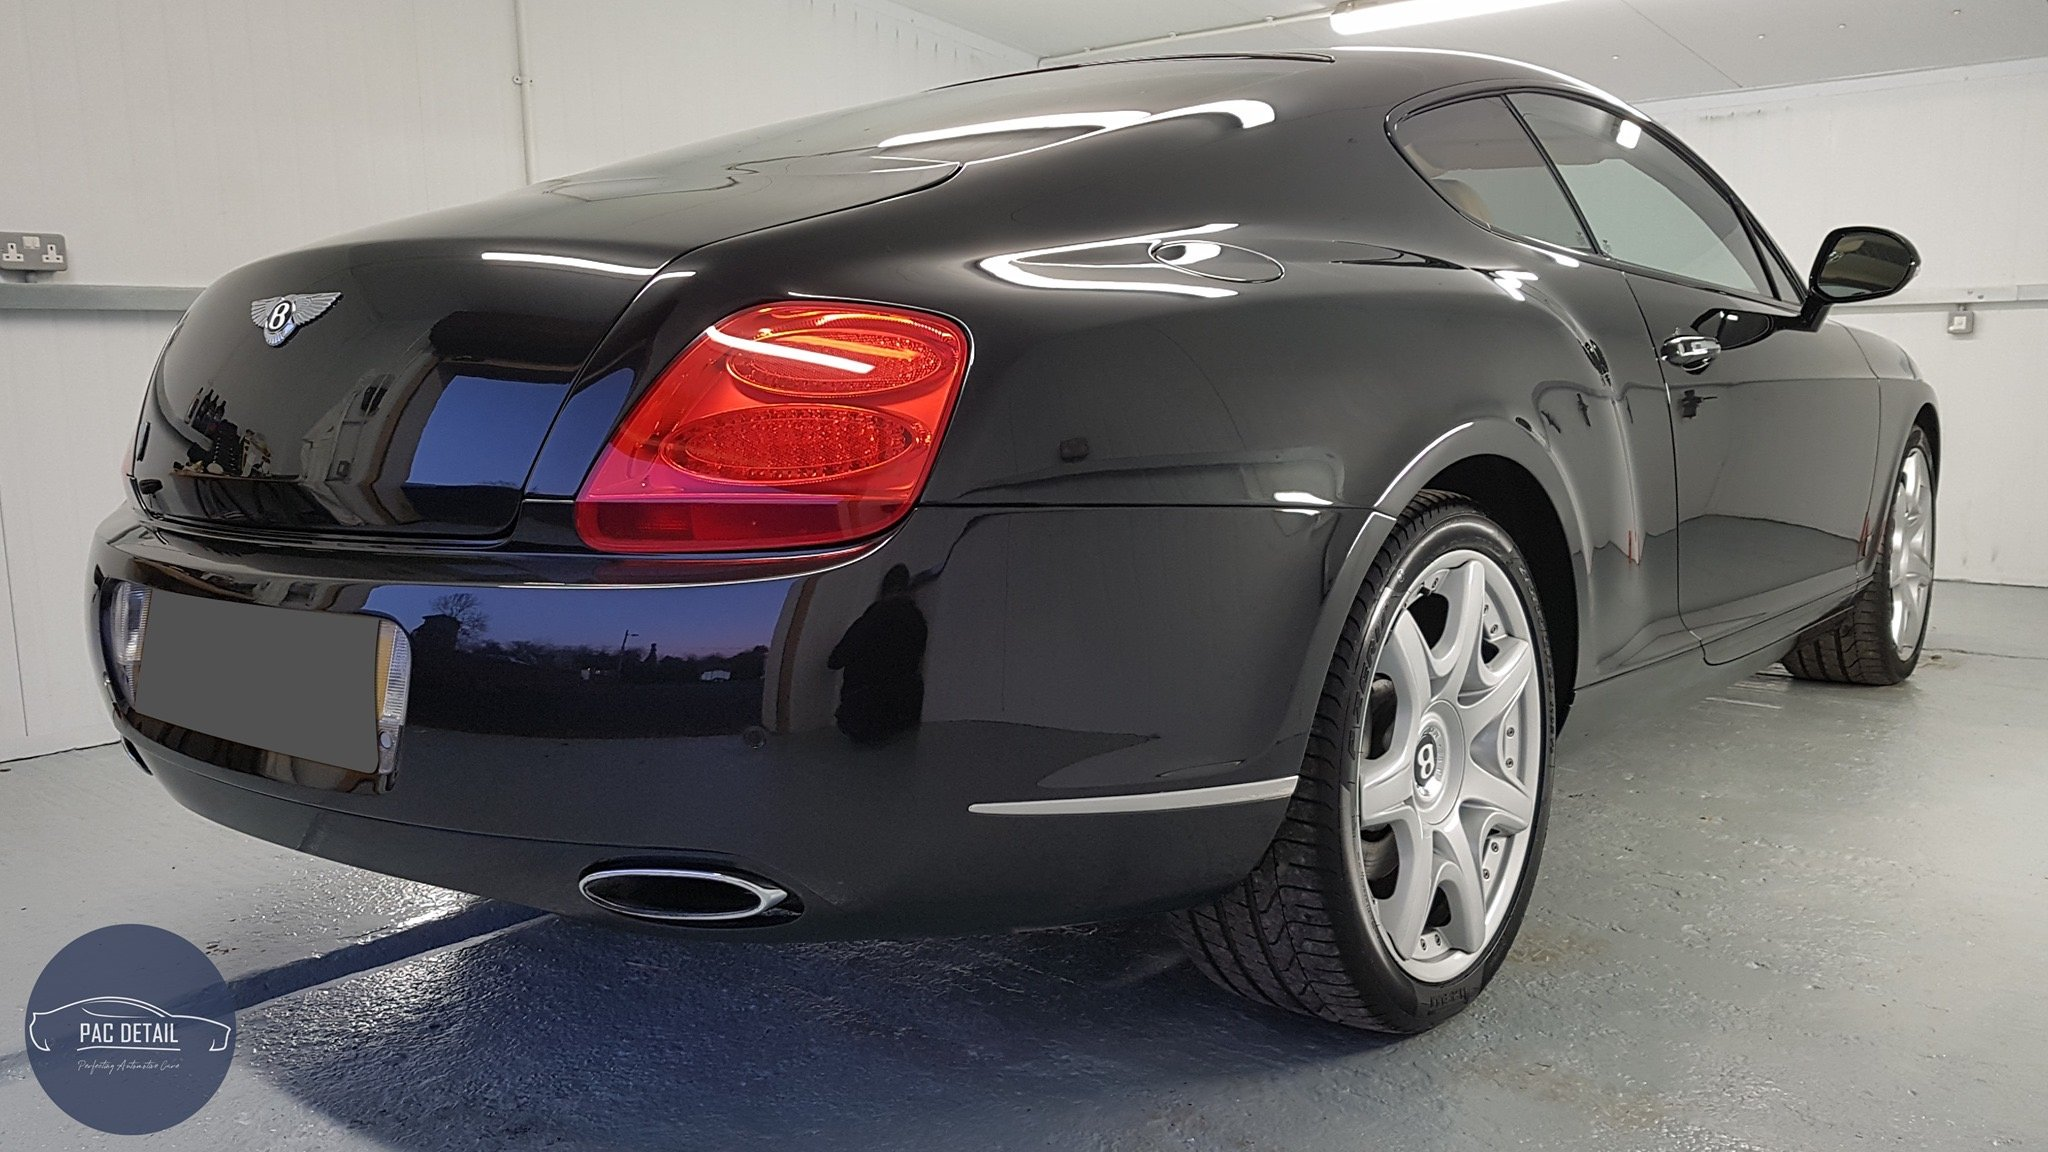 2008 Bentley continental GT Rare revere London edition. For Sale (picture 2 of 6)